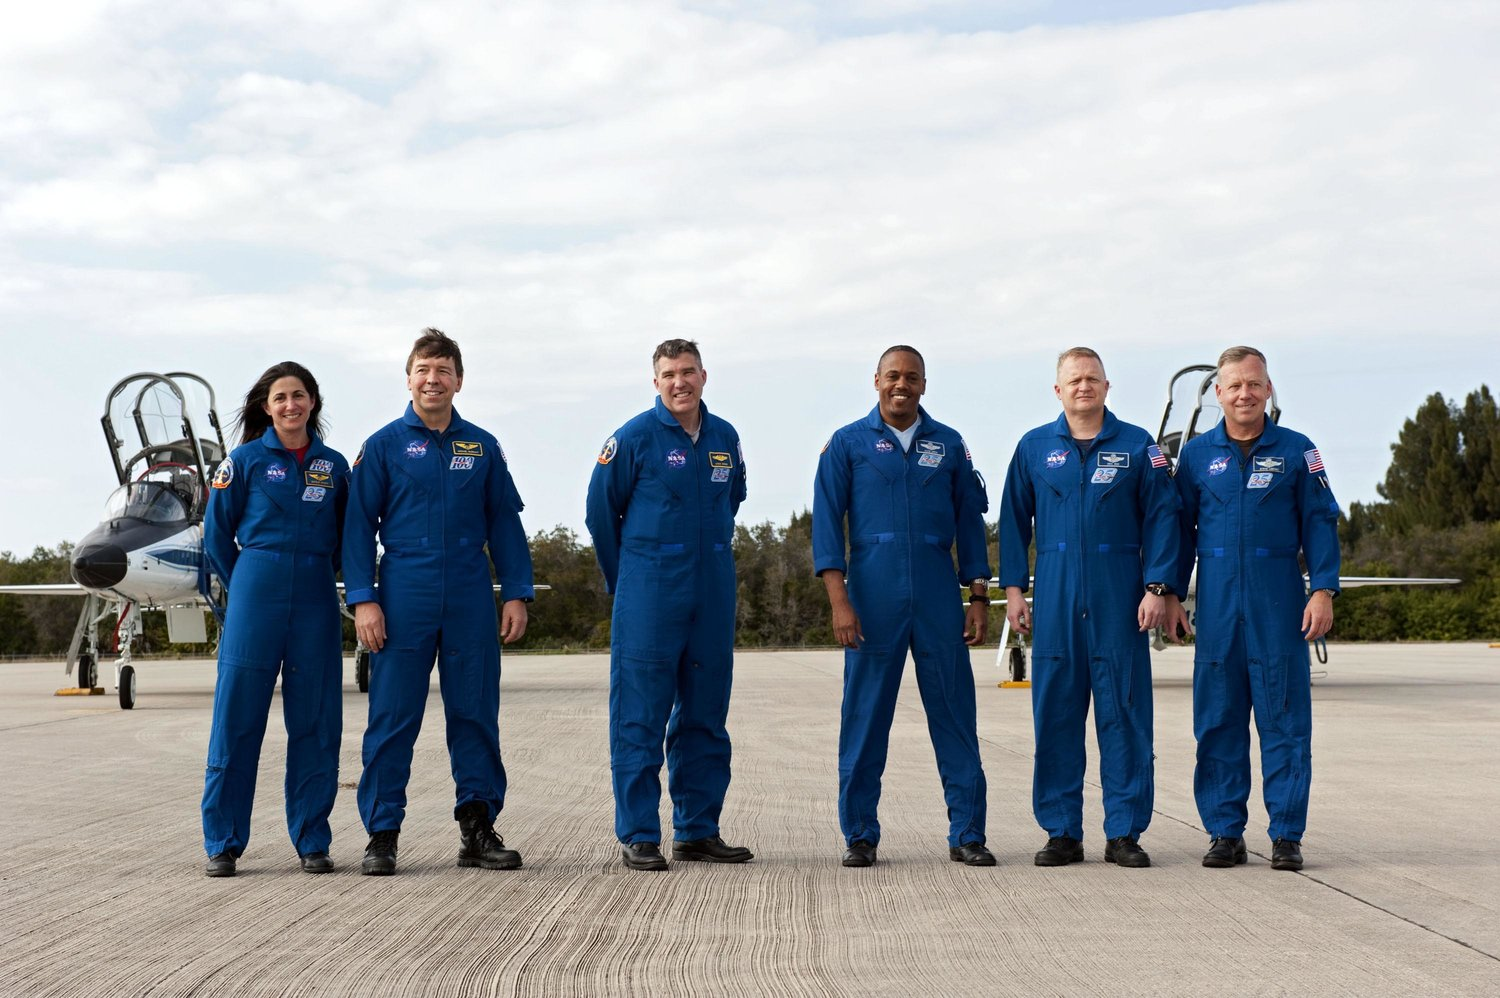 The crew of Discovery's STS-133, Nicole Stott's second space shuttle mission, at NASA's Kennedy Space Center in Florida, her home state.